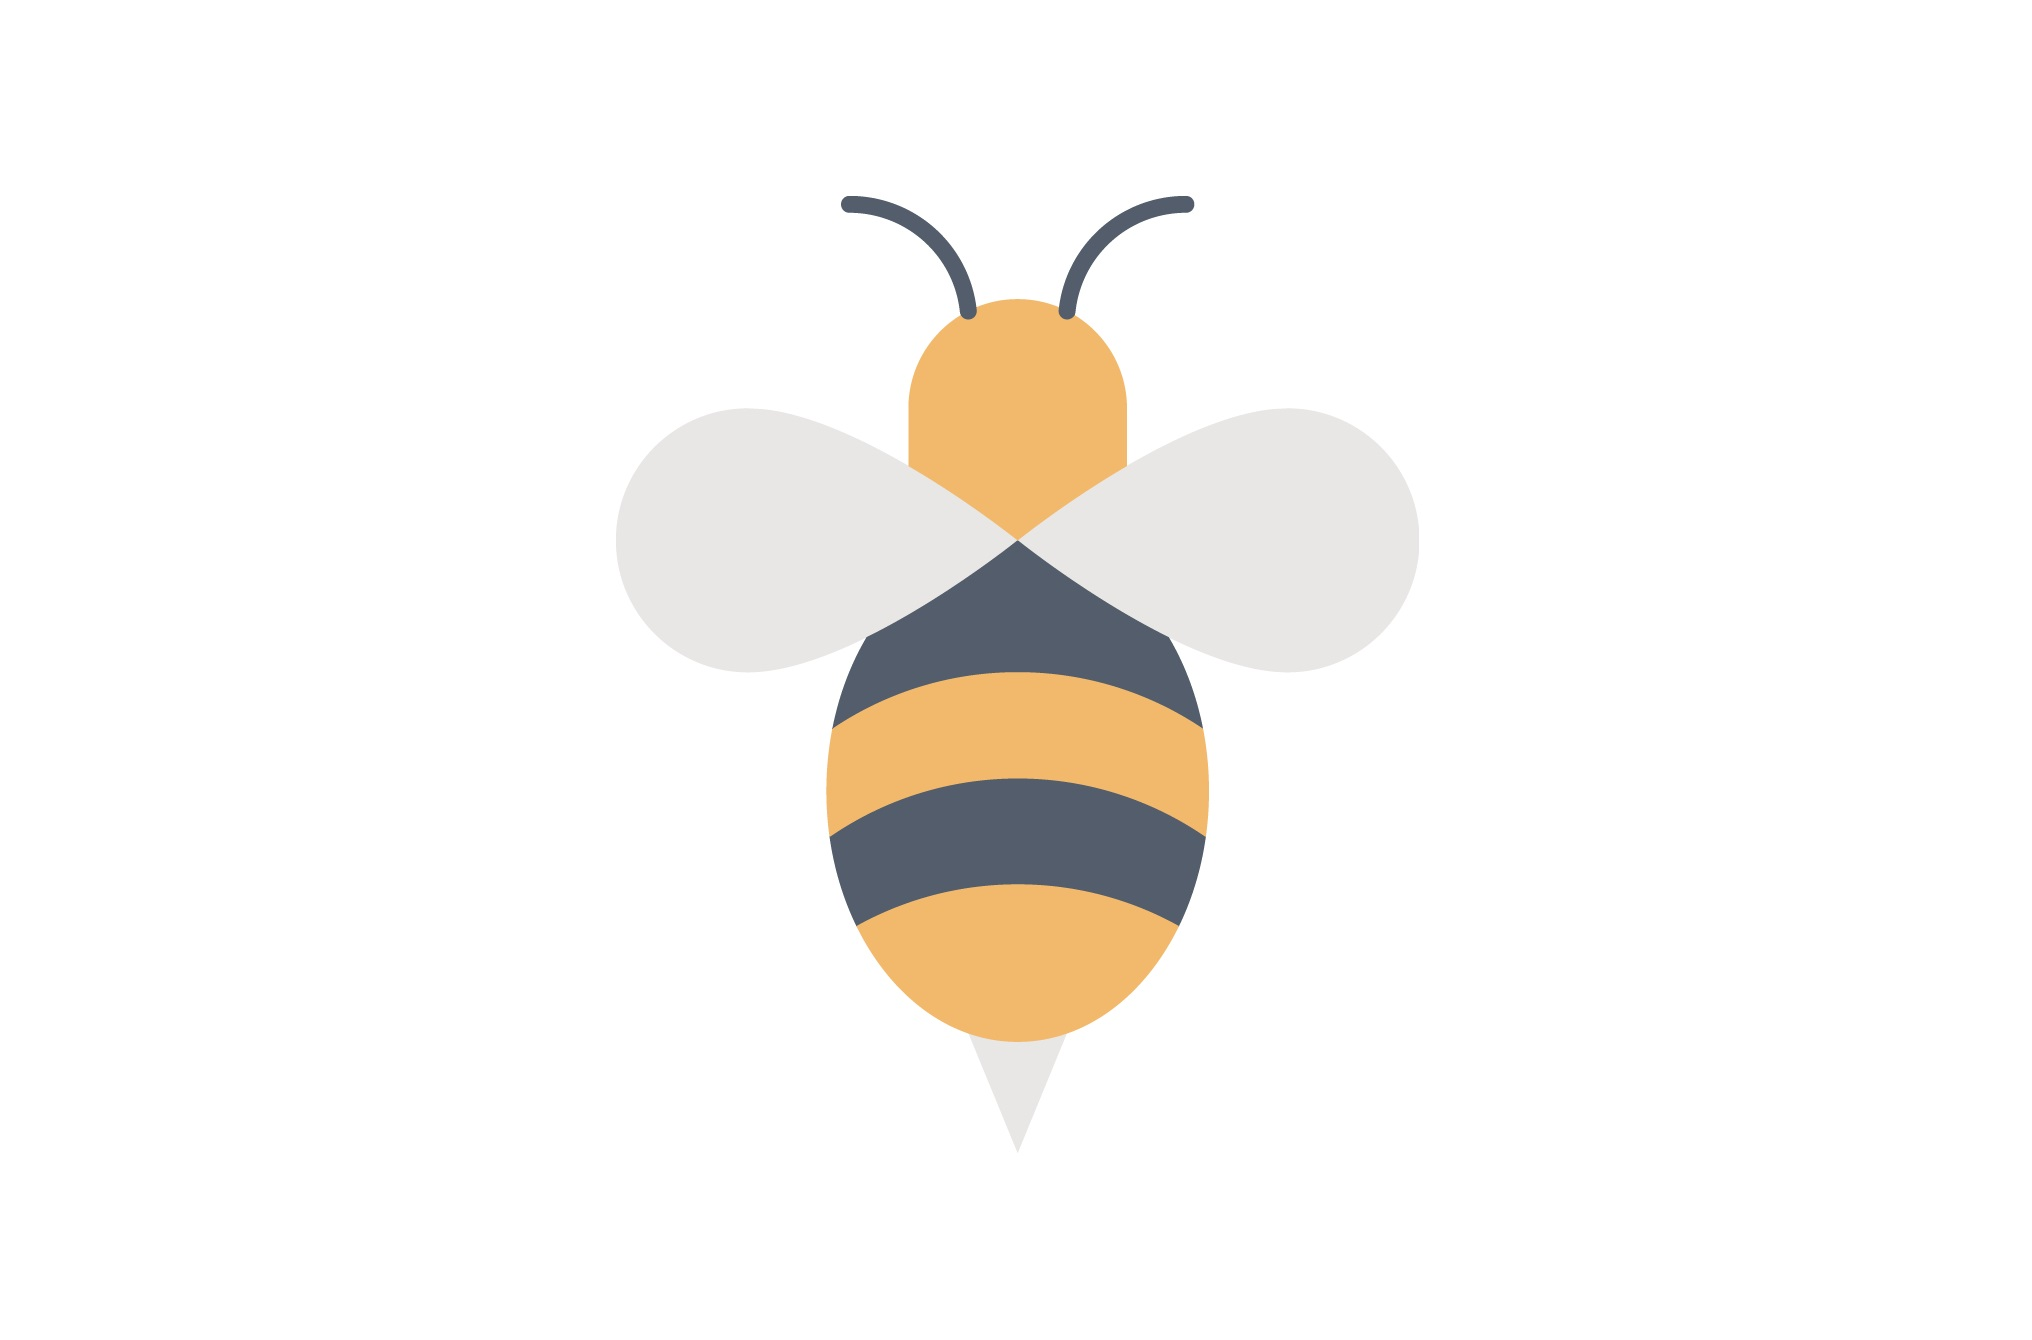 Download Free Bee Graphic By Iconika Creative Fabrica for Cricut Explore, Silhouette and other cutting machines.